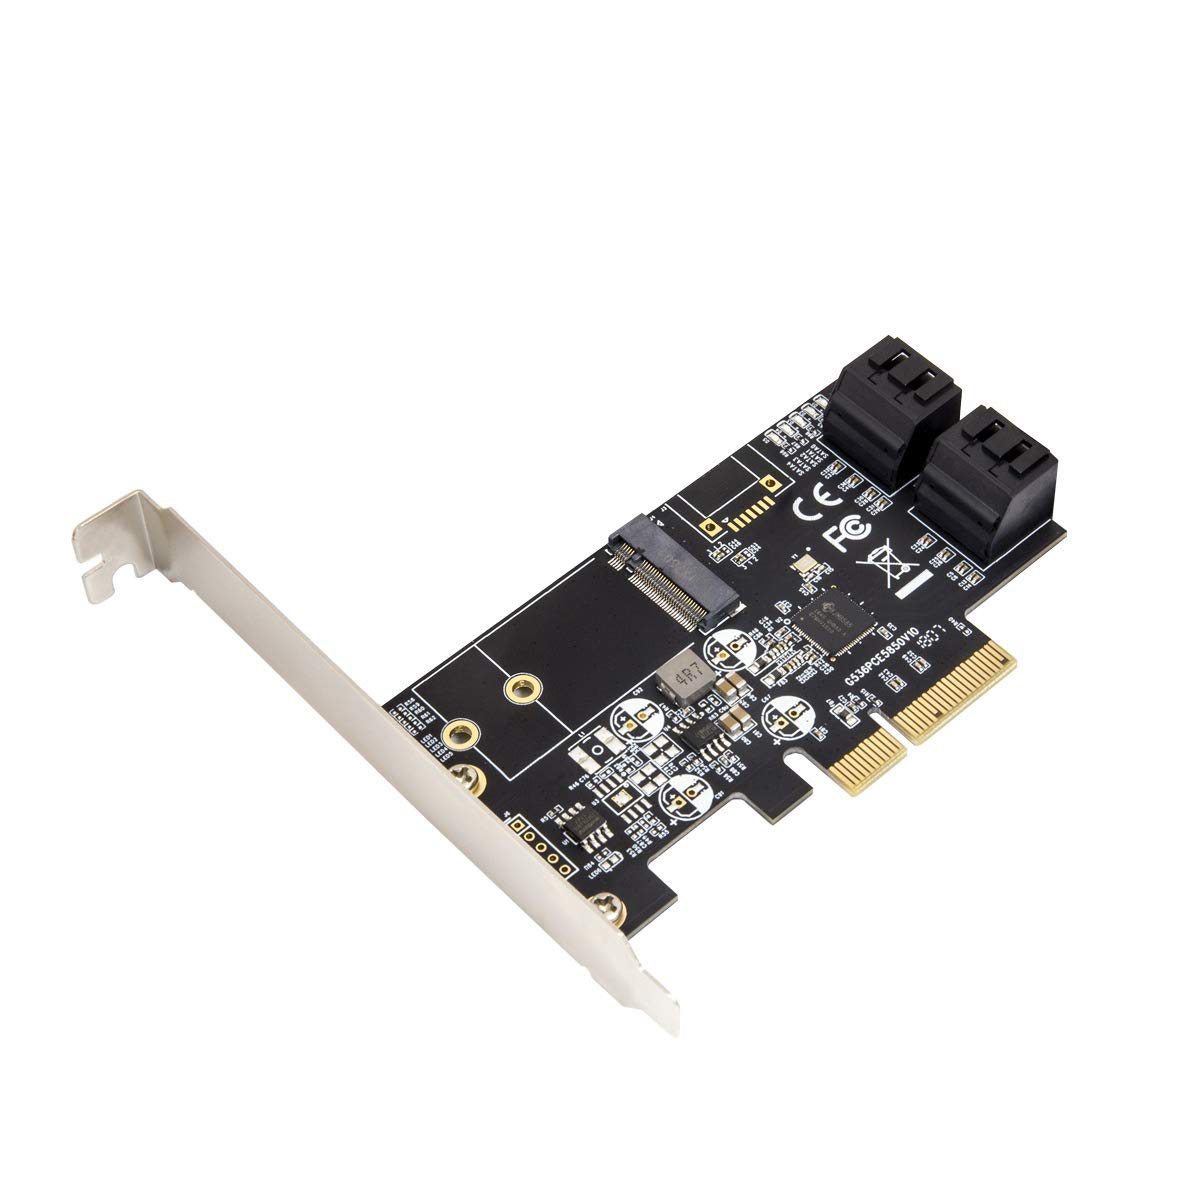 IO CREST SI-PEX40138 Internal 4 Port Non-Raid SATA III 6GB/S with M.2 B-Key 22x42 Pci-E X4 Controller Card for Desktop PC Support SSD and HDD with Low Profile Bracket. JMB585 Chipset